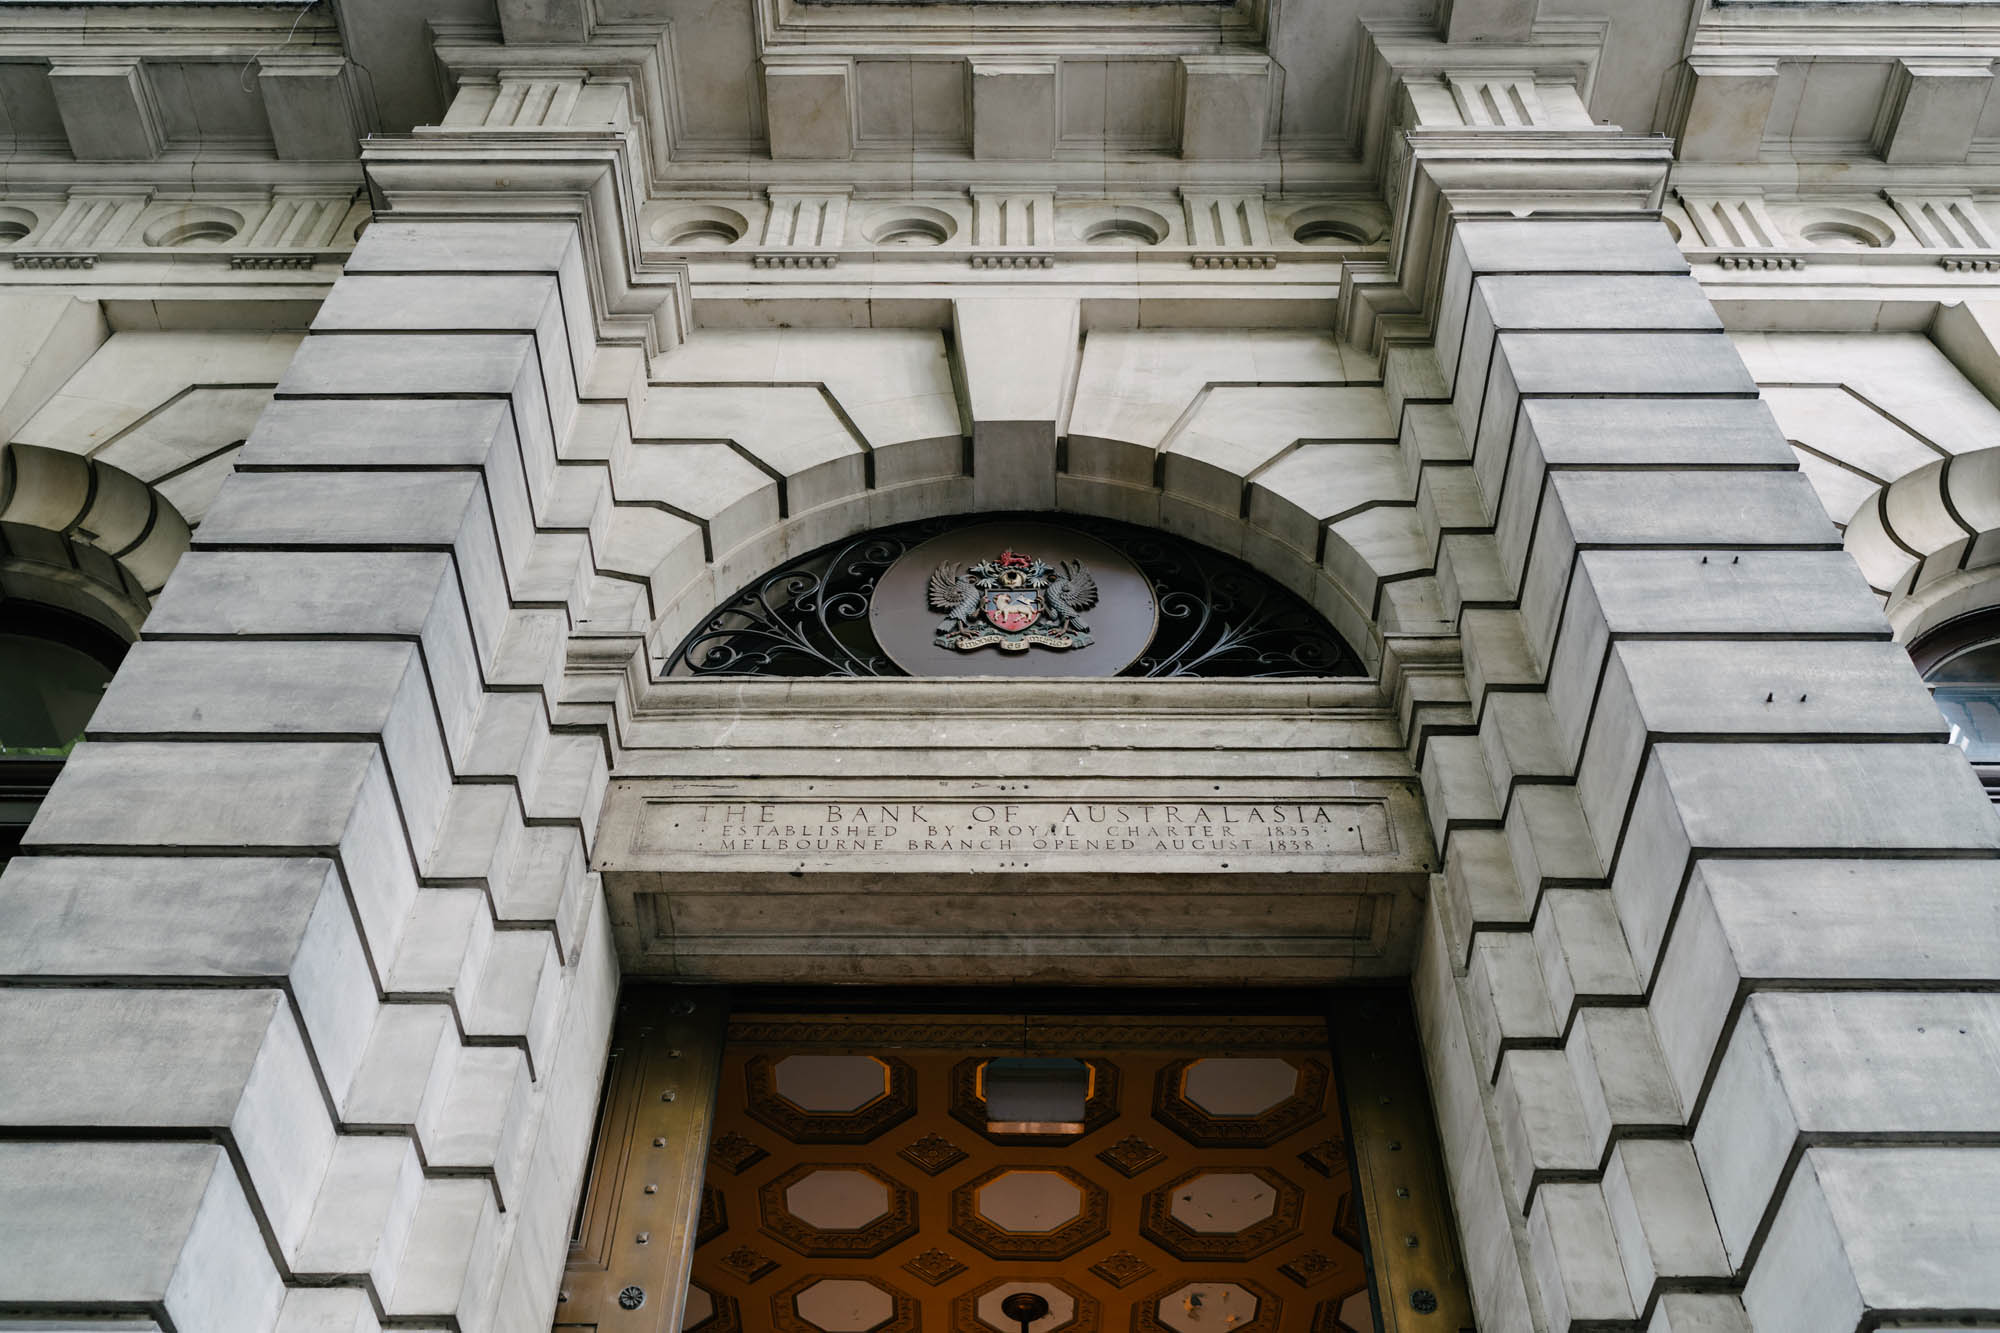 Melbourne Heritage Listed Building - The Bank of Australasia